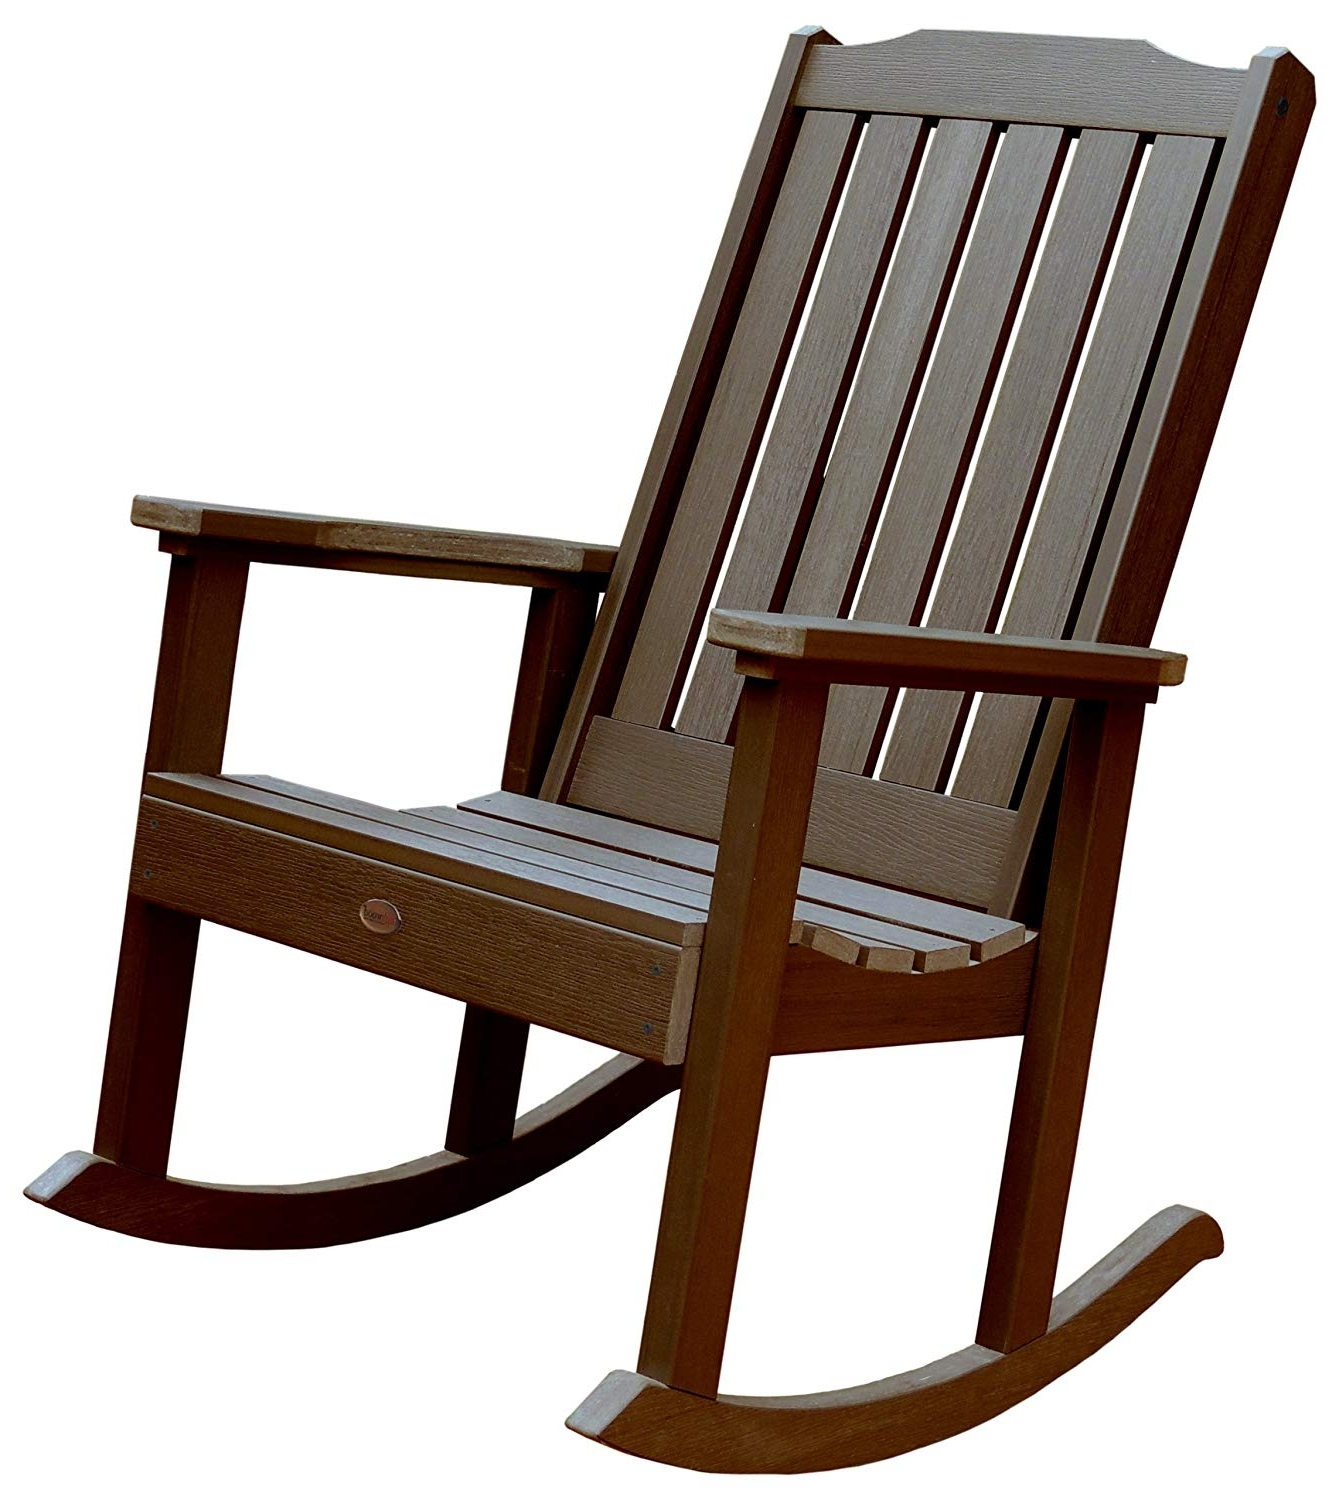 Favorite Amazon : Highwood Lehigh Rocking Chair, Weathered Acorn : Patio Pertaining To Patio Rocking Chairs With Covers (View 3 of 15)